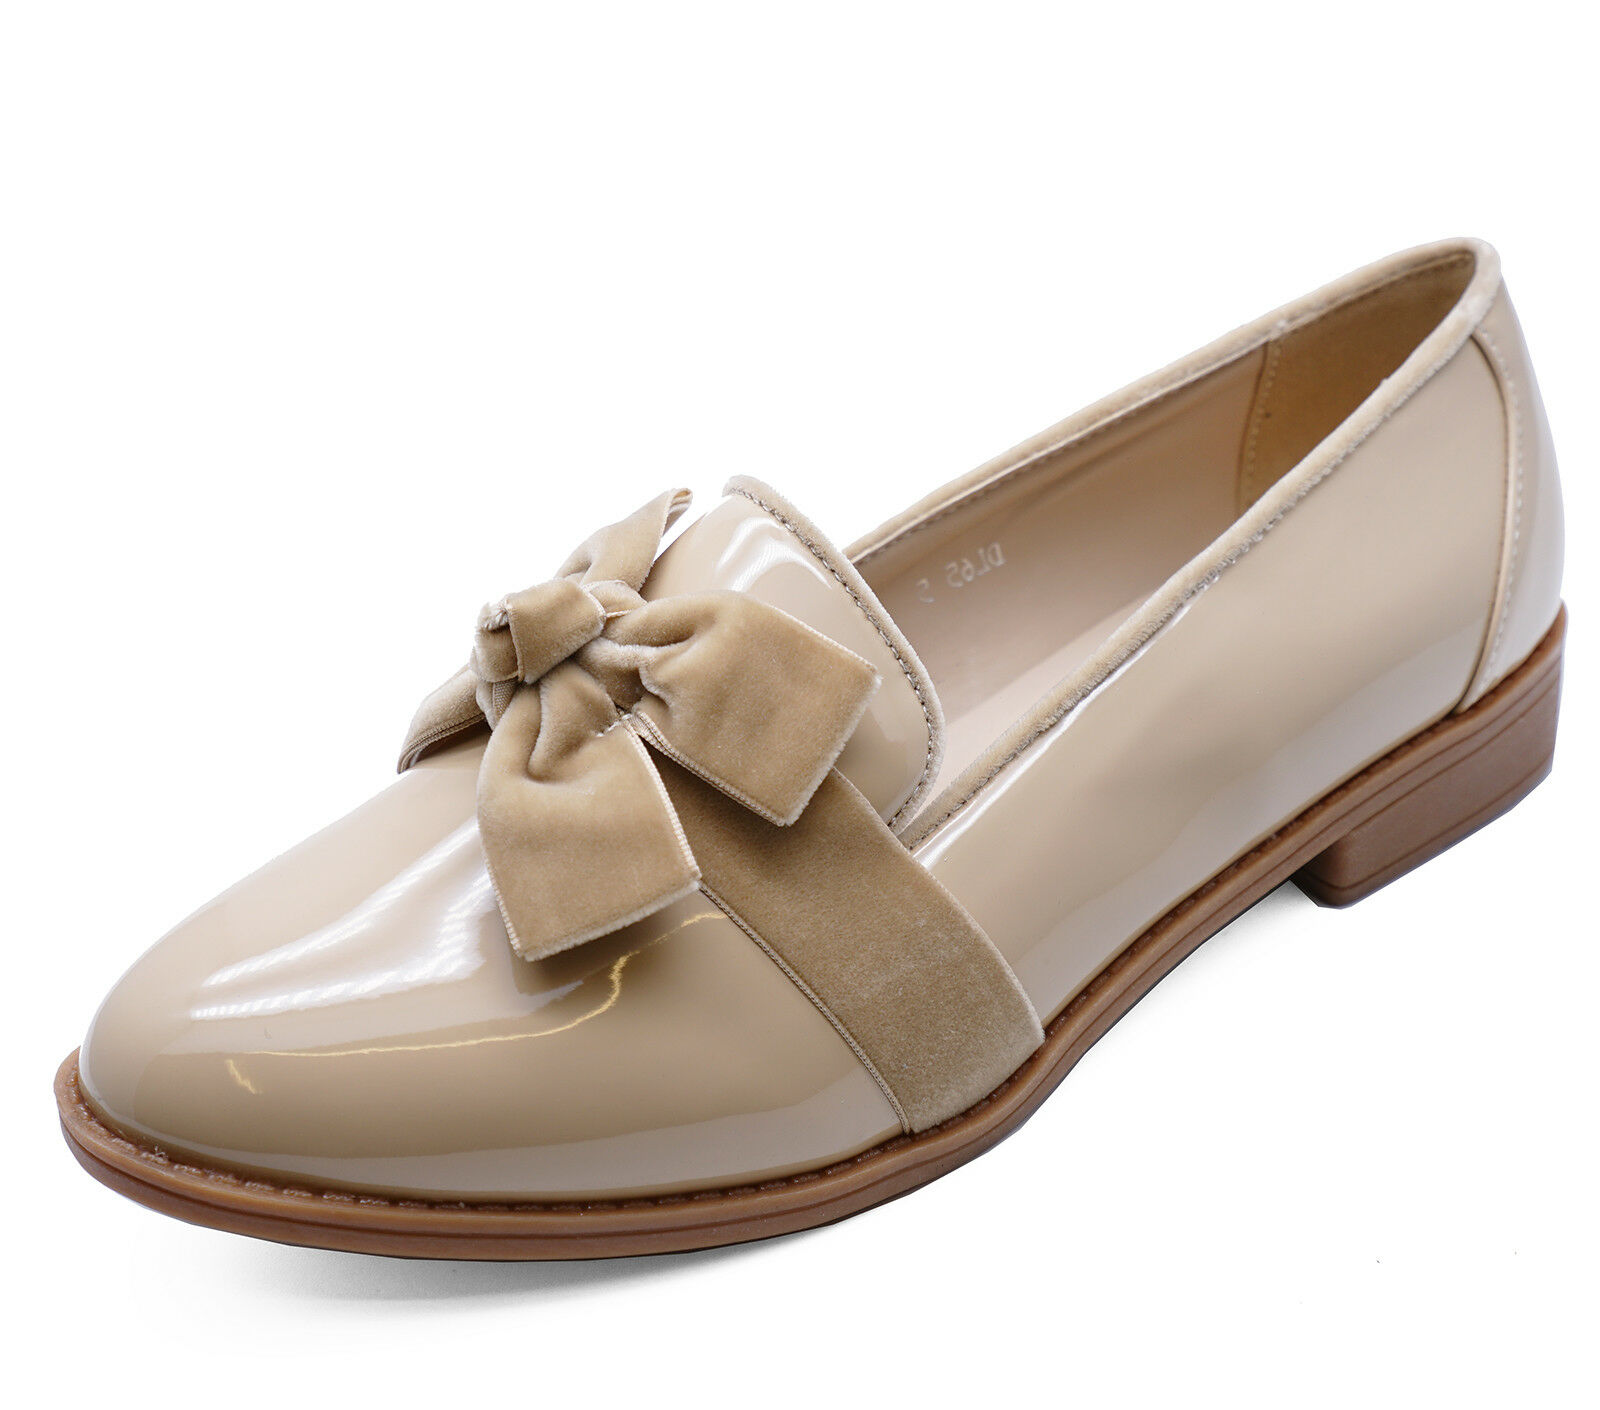 LADIES SMART BEIGE SLIP-ON LOAFERS CASUAL WORK PATENT COMFY FLAT SHOES SIZES 3-8